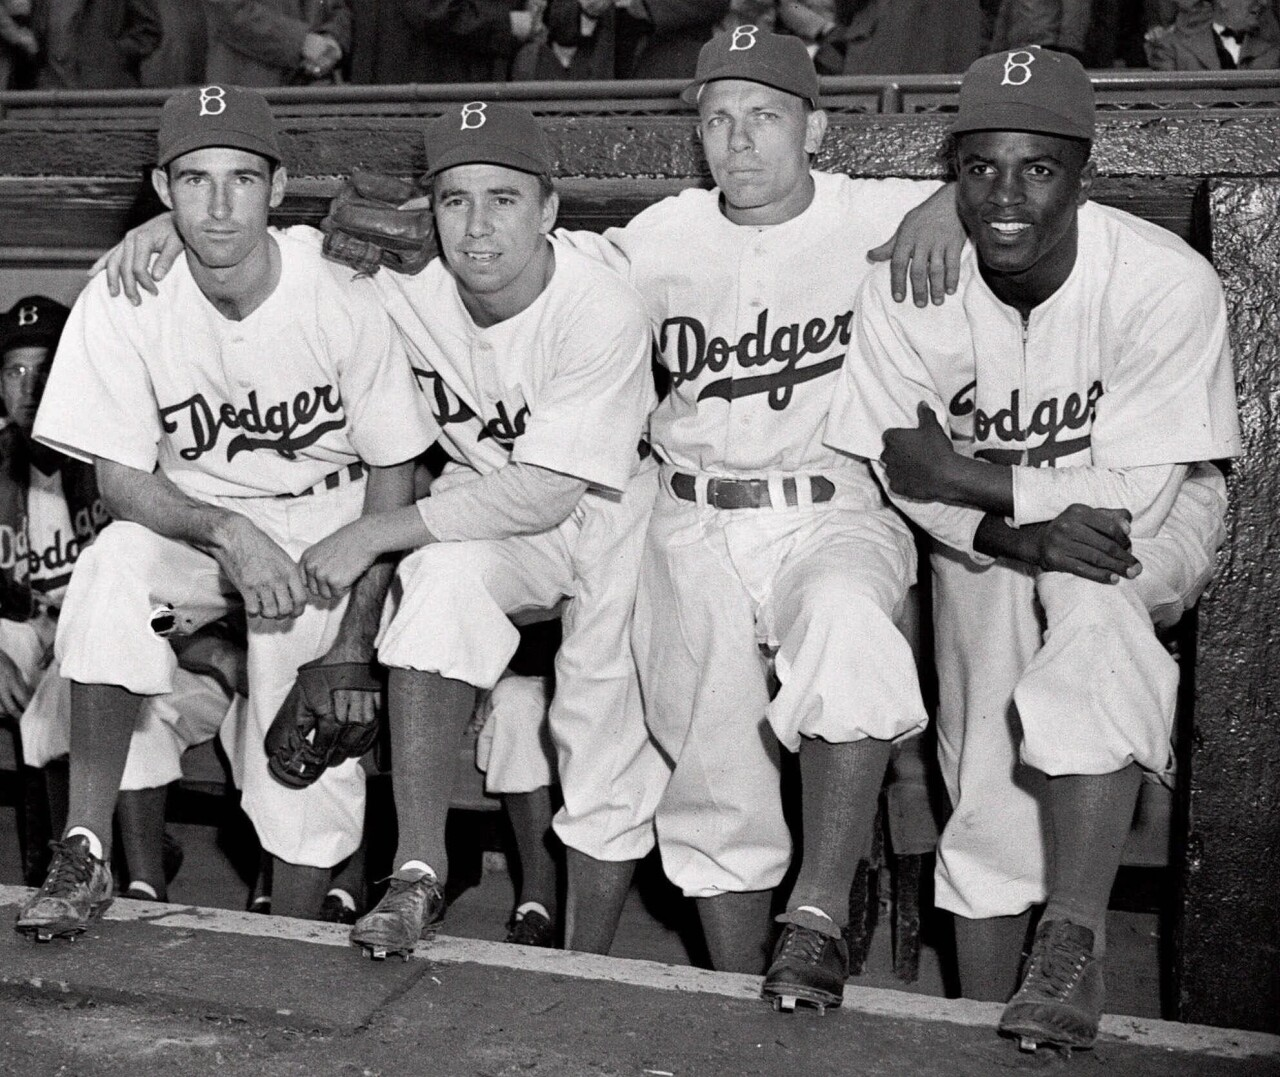 (In this April 15, 1947, file photo, from left, Brooklyn Dodgers baseball players John Jorgensen, Pee Wee Reese, Ed Stanky and Jackie Robinson pose at Ebbets Field in New York. AP Photo, File)